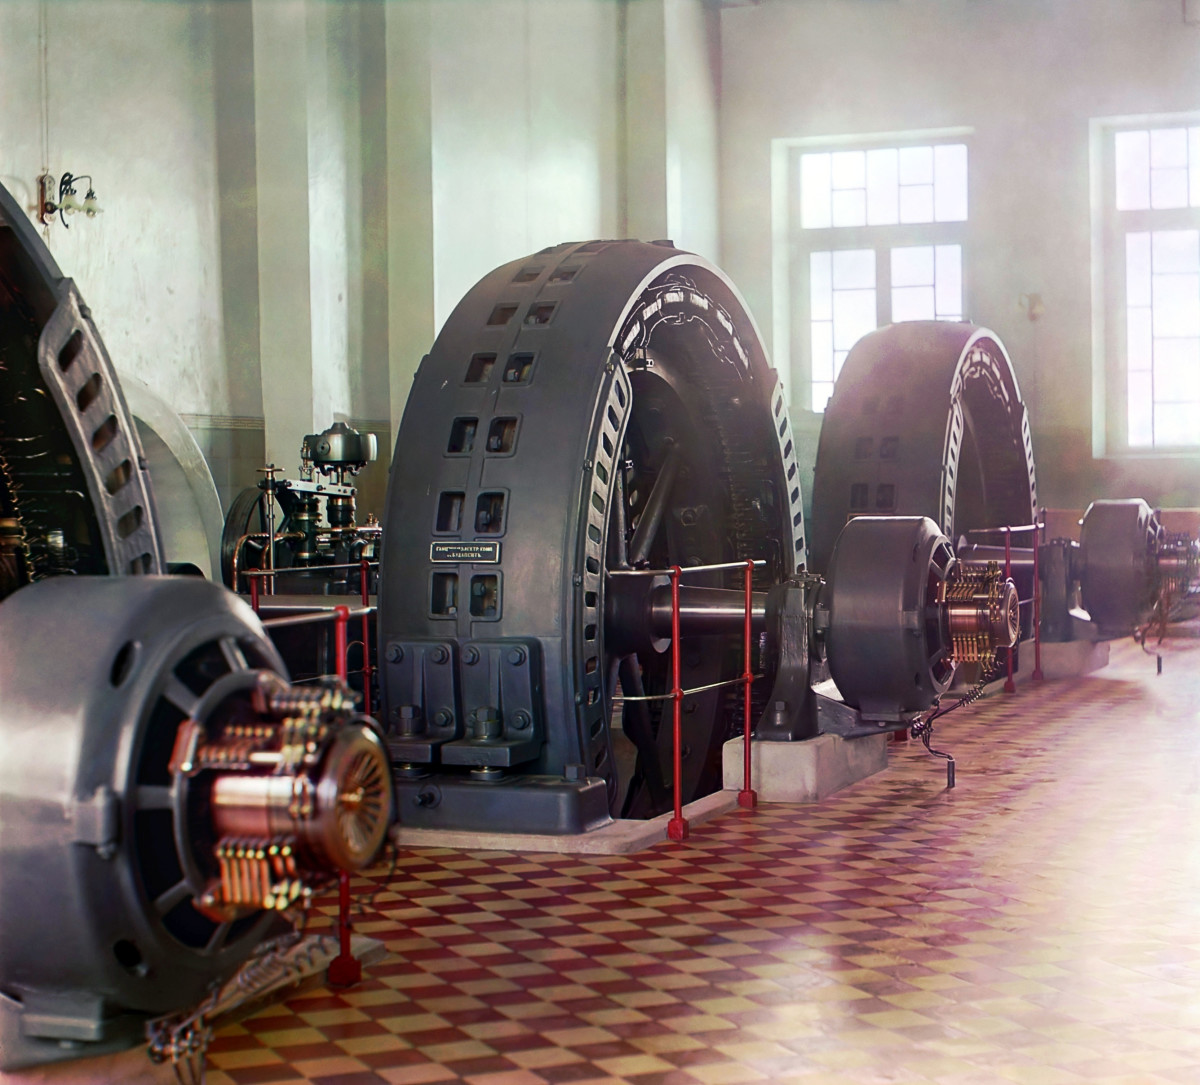 Early 20th century (1909) alternators in a hydroelectric power station.